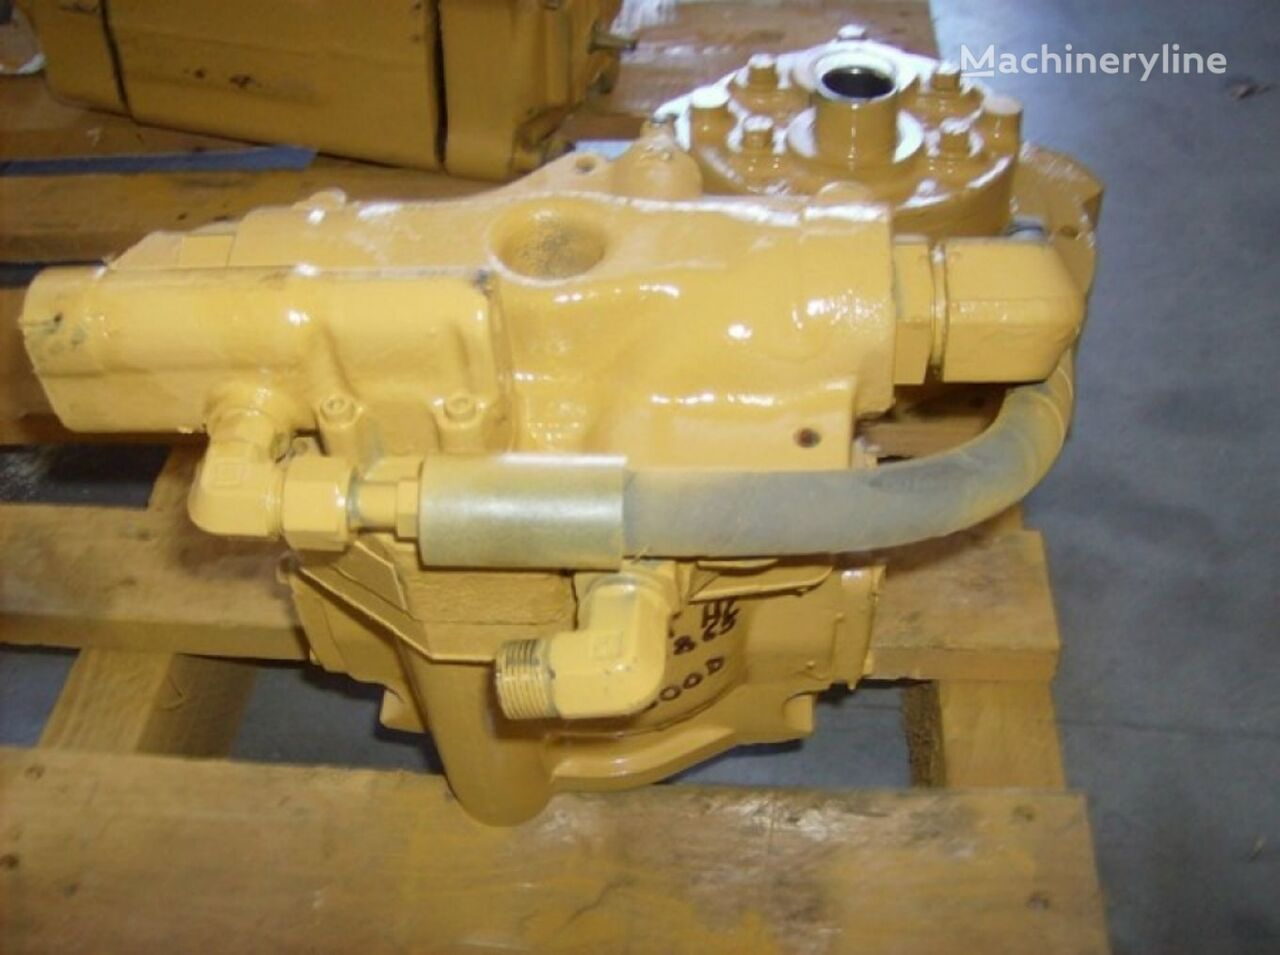 HYDRAULIC PUMP 5MG324 hydraulic pump for CATERPILLAR D300D 5MG324 bulldozer